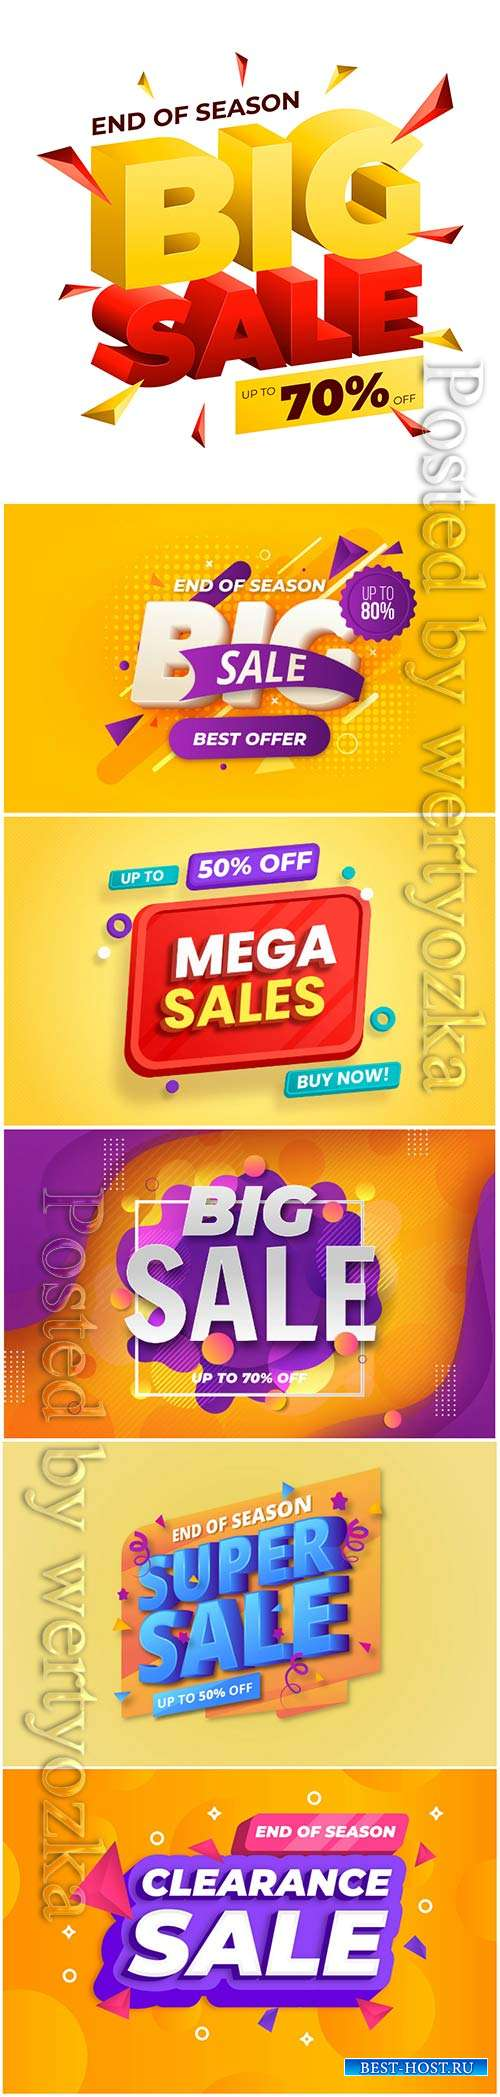 Colorful 3d sales vector background # 2